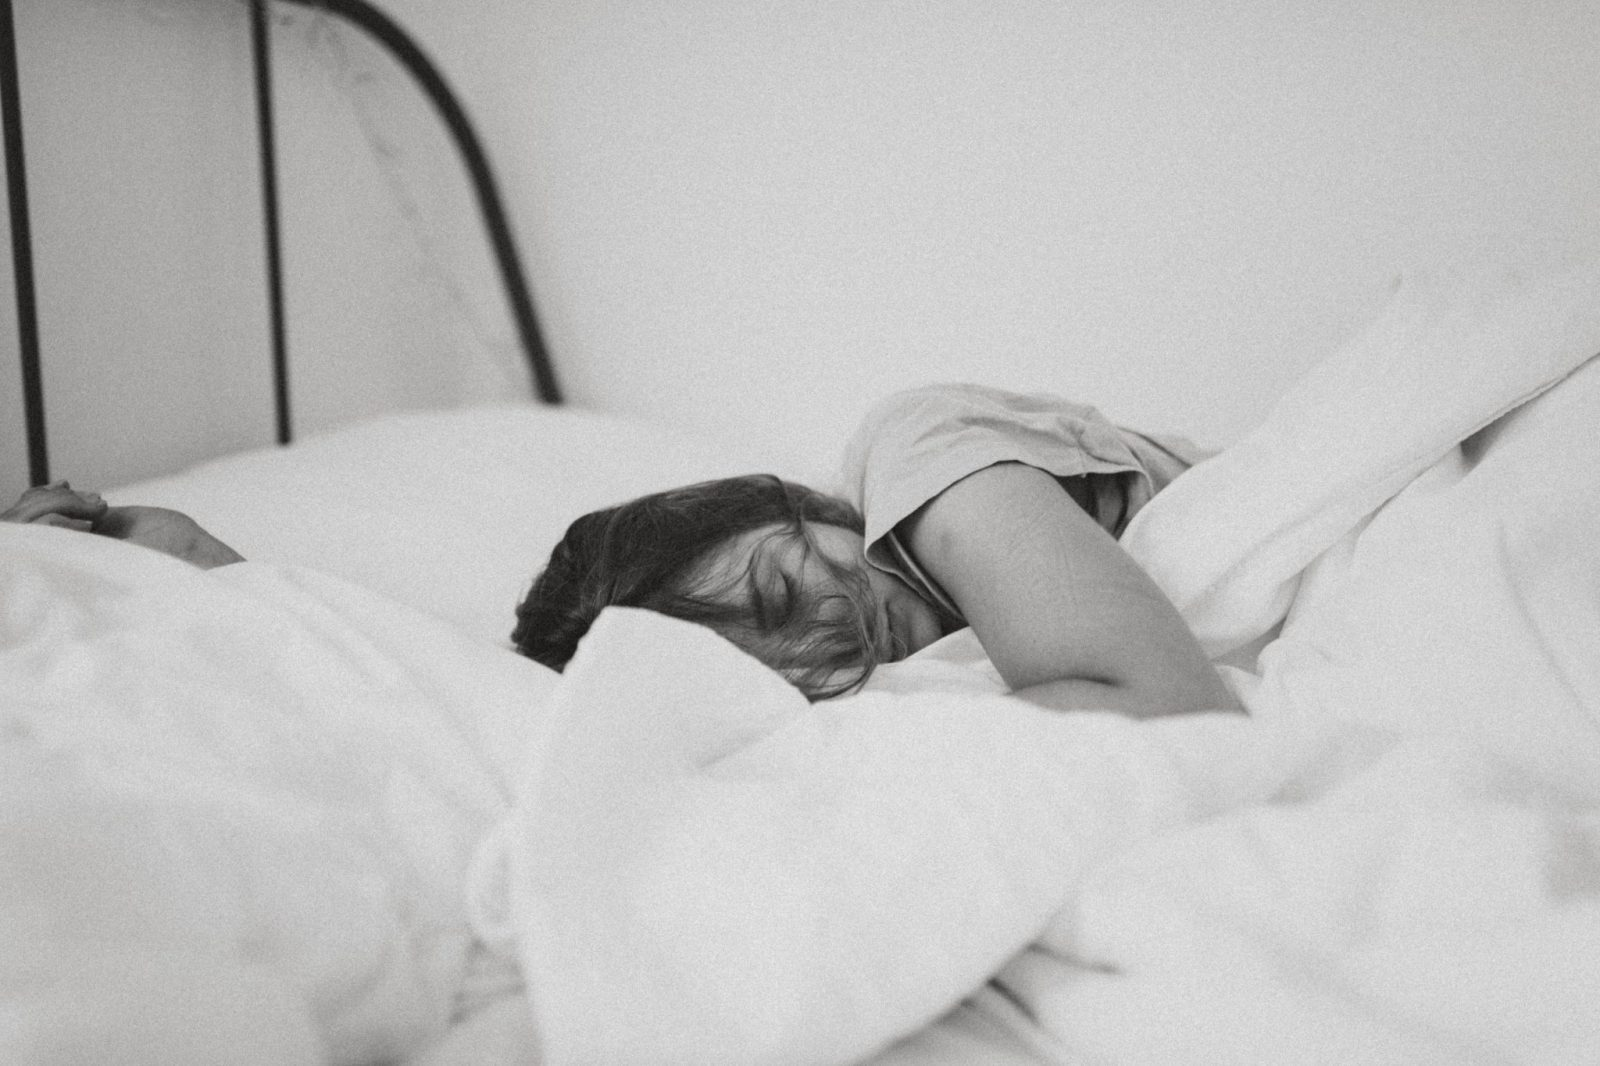 Woman with messy hair is sleeping in a white bed with messy sheets. Showing how to get better sleep.